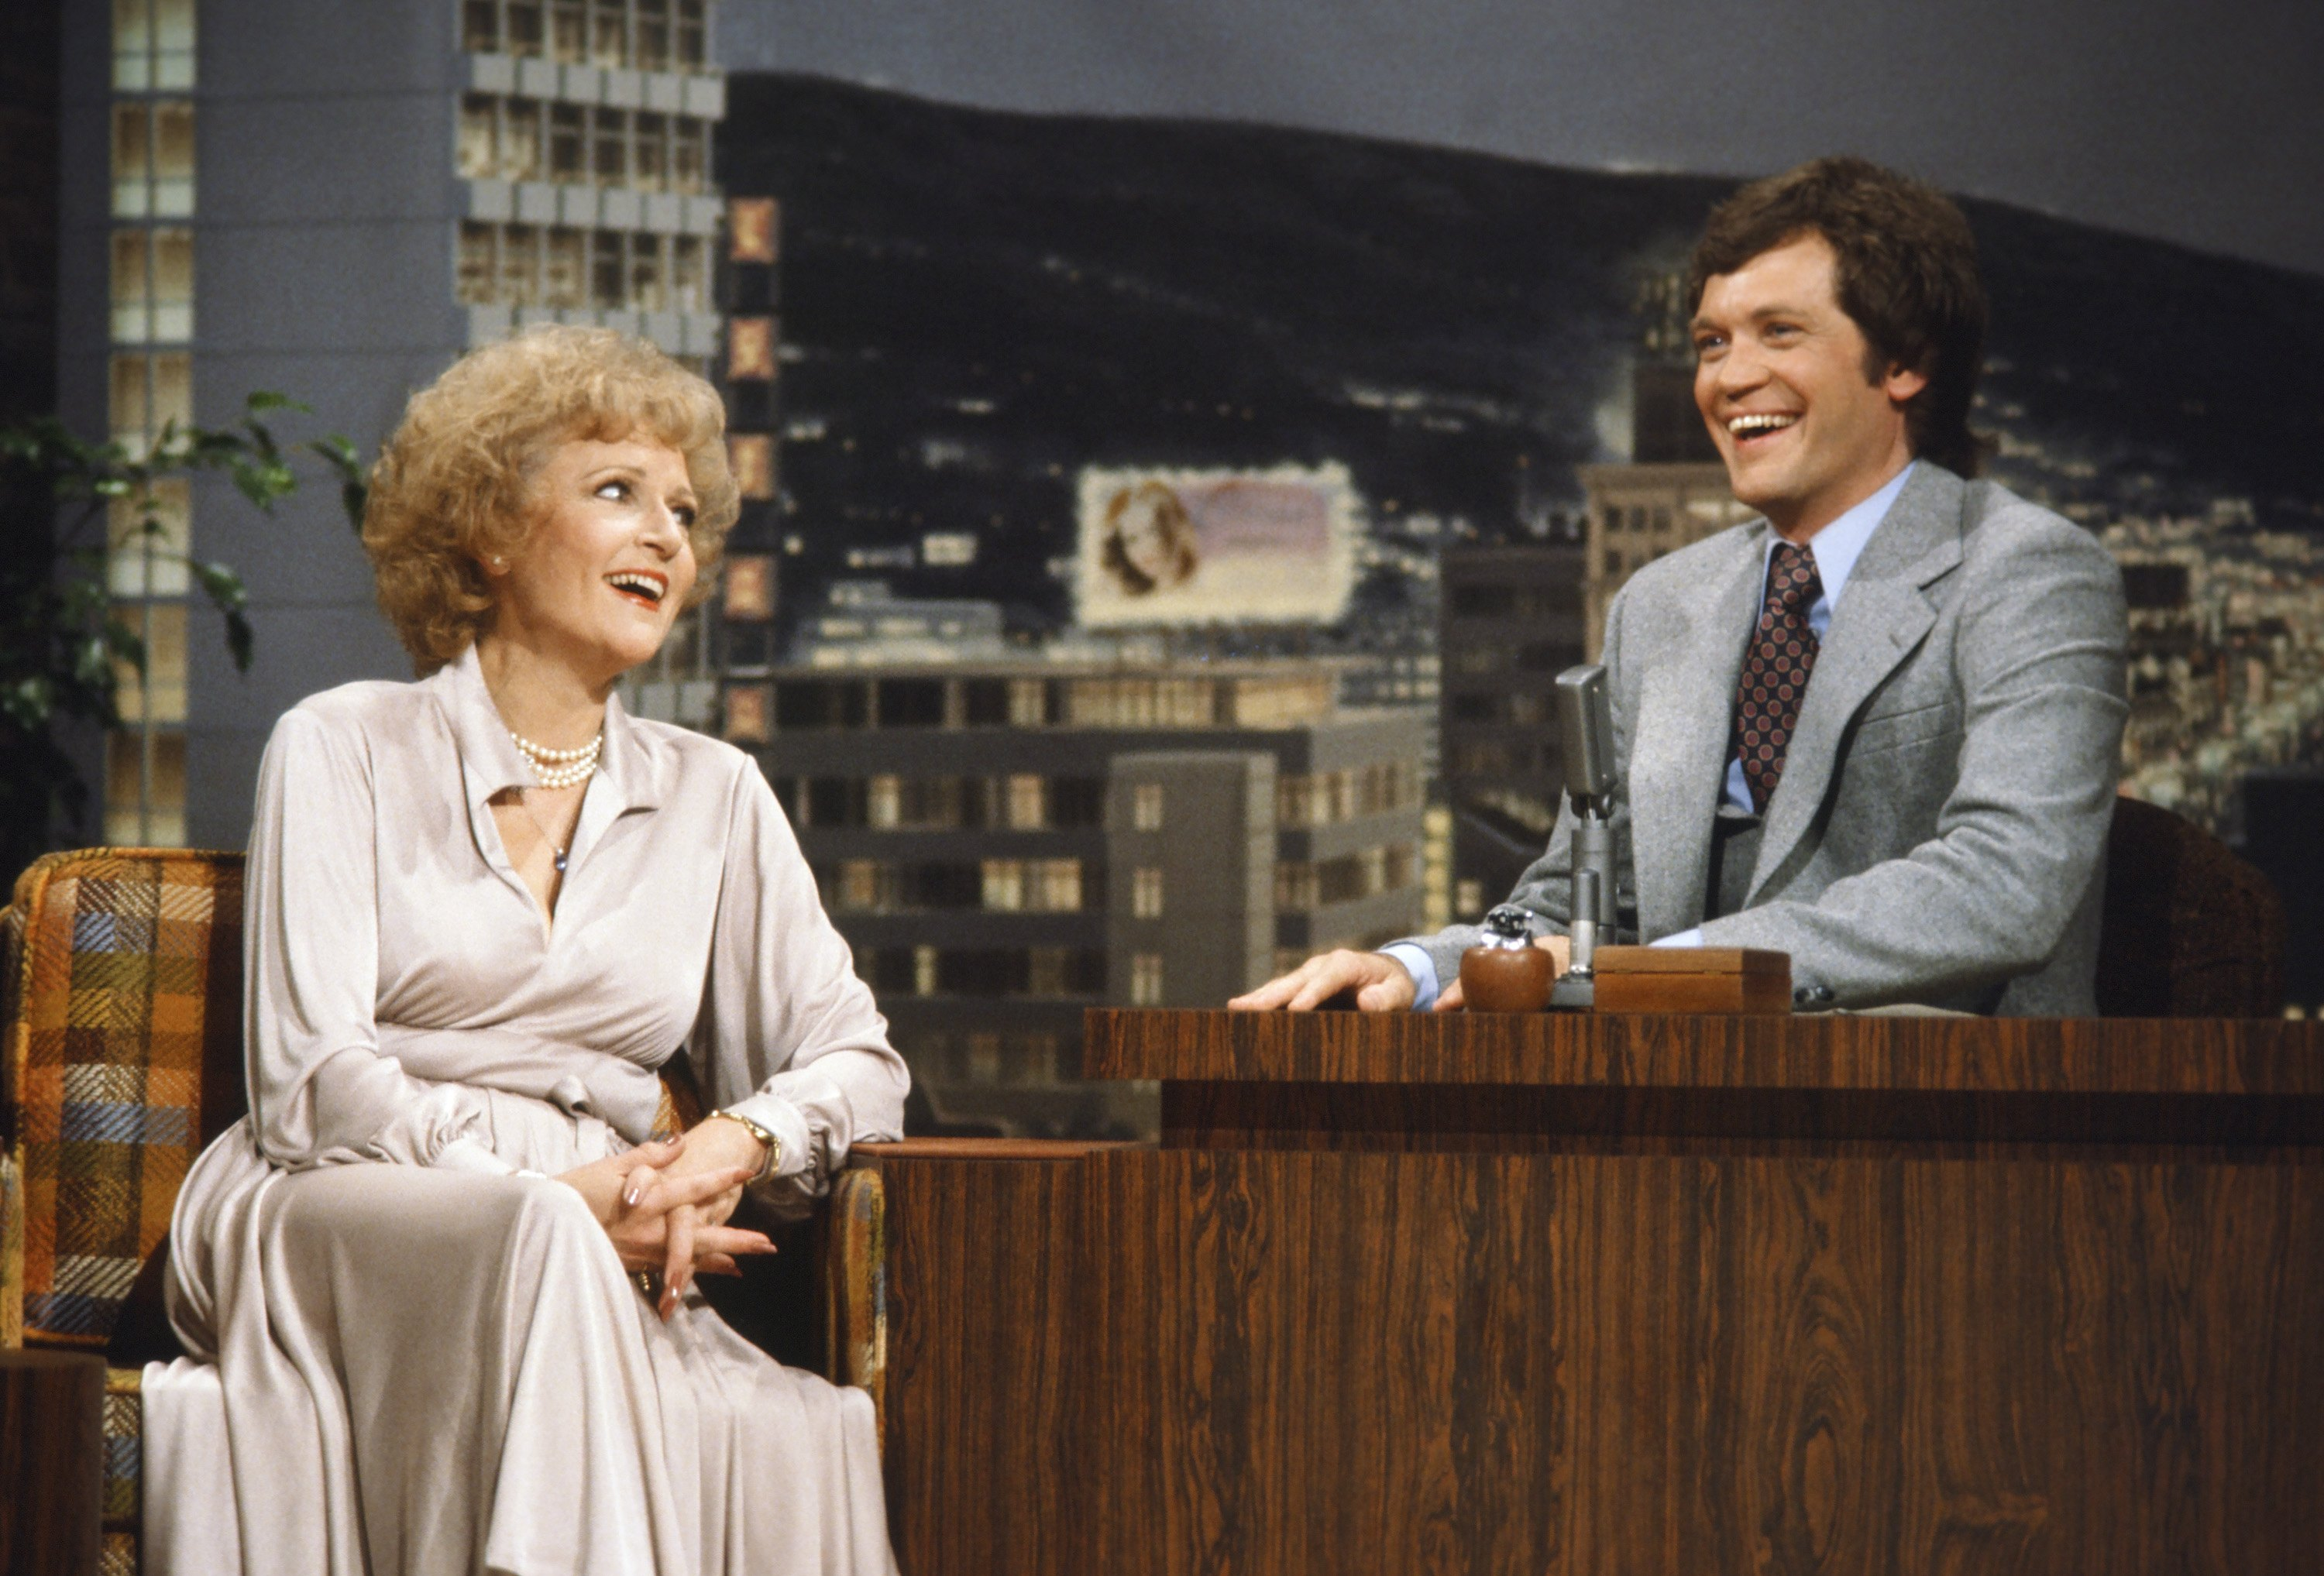 Before he received his own show, Letterman was a regular guest host for <i>The Tonight Show Starring Johnny Carson</i>. Above, he is seen interviewing Betty White.